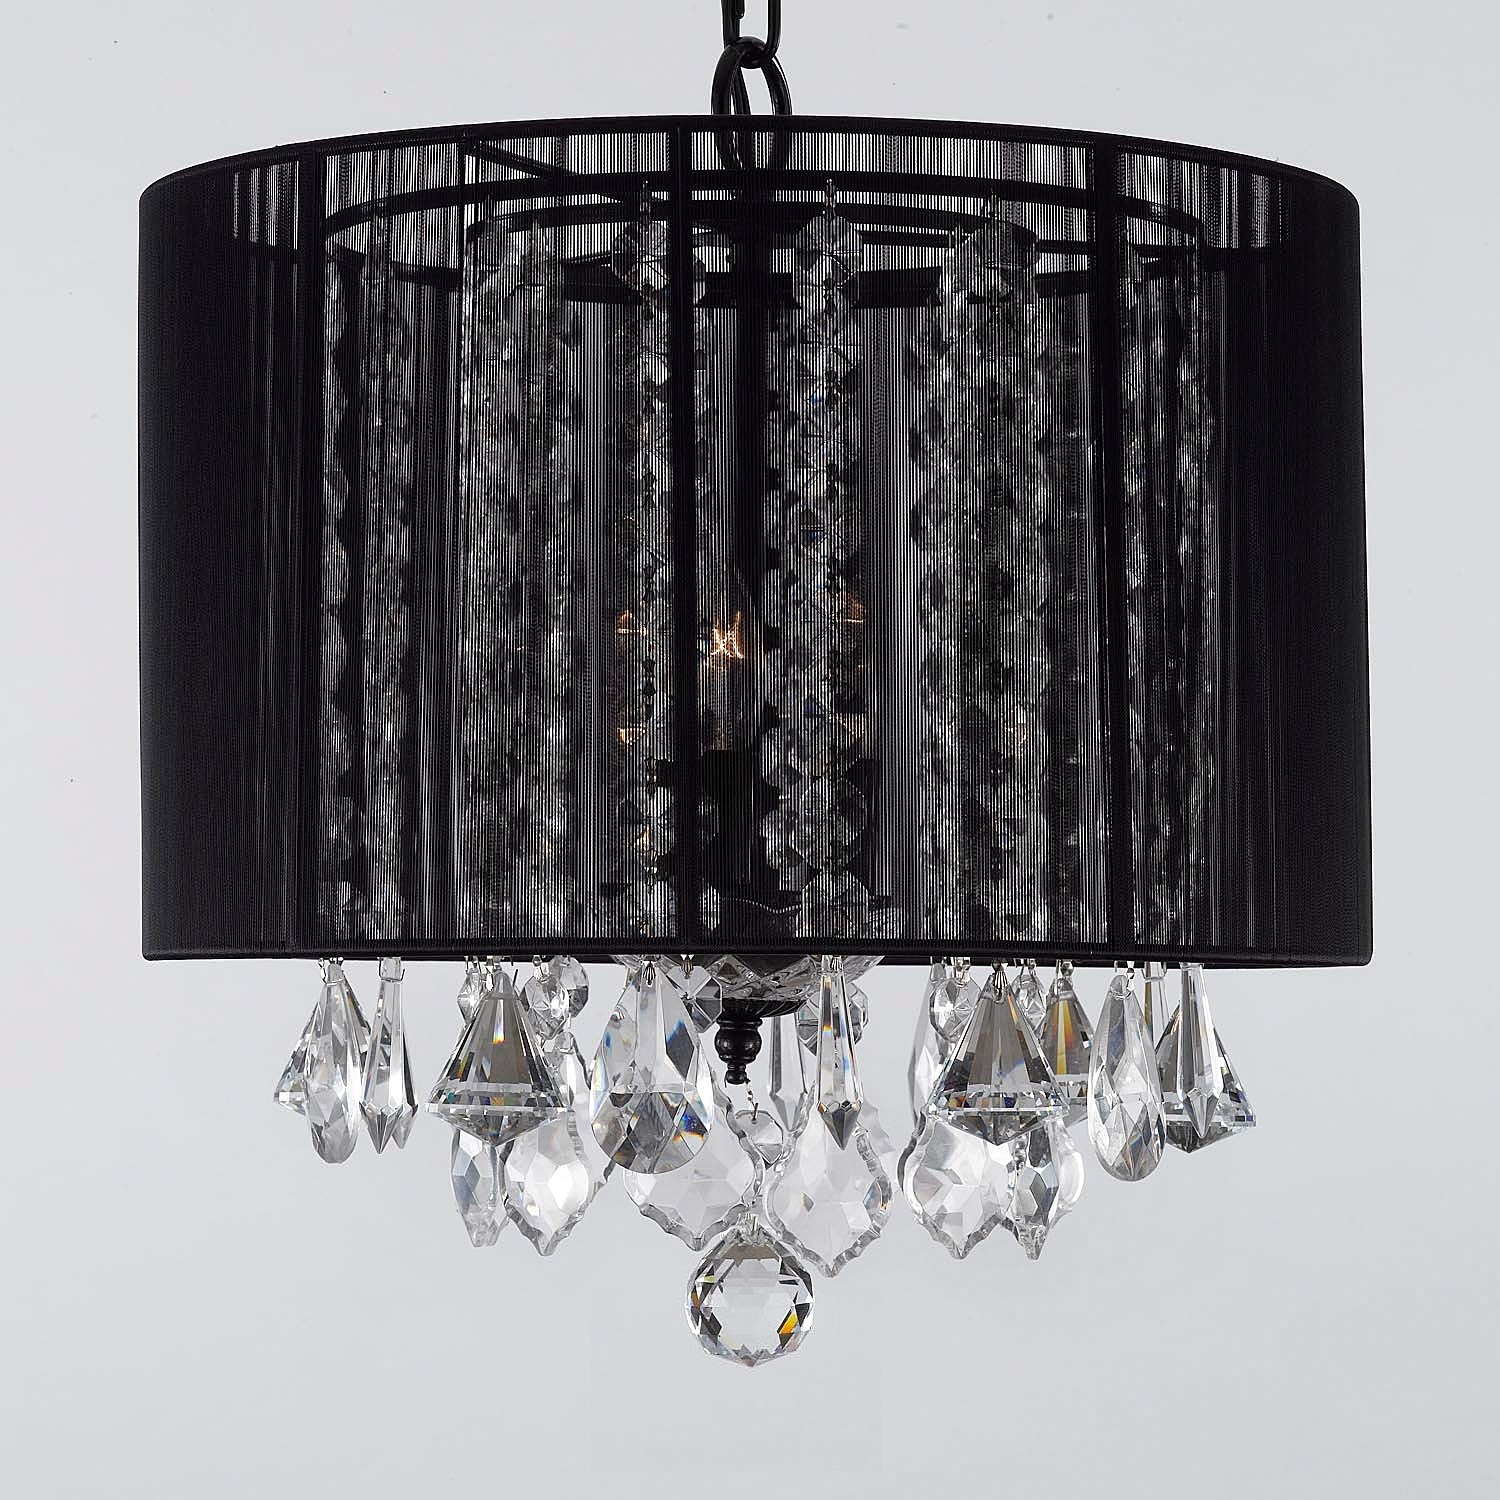 Gallery Lighting Sm 604 3 3 Light Crystal Chandelier With Black Throughout 3 Light Crystal Chandeliers (Image 9 of 25)